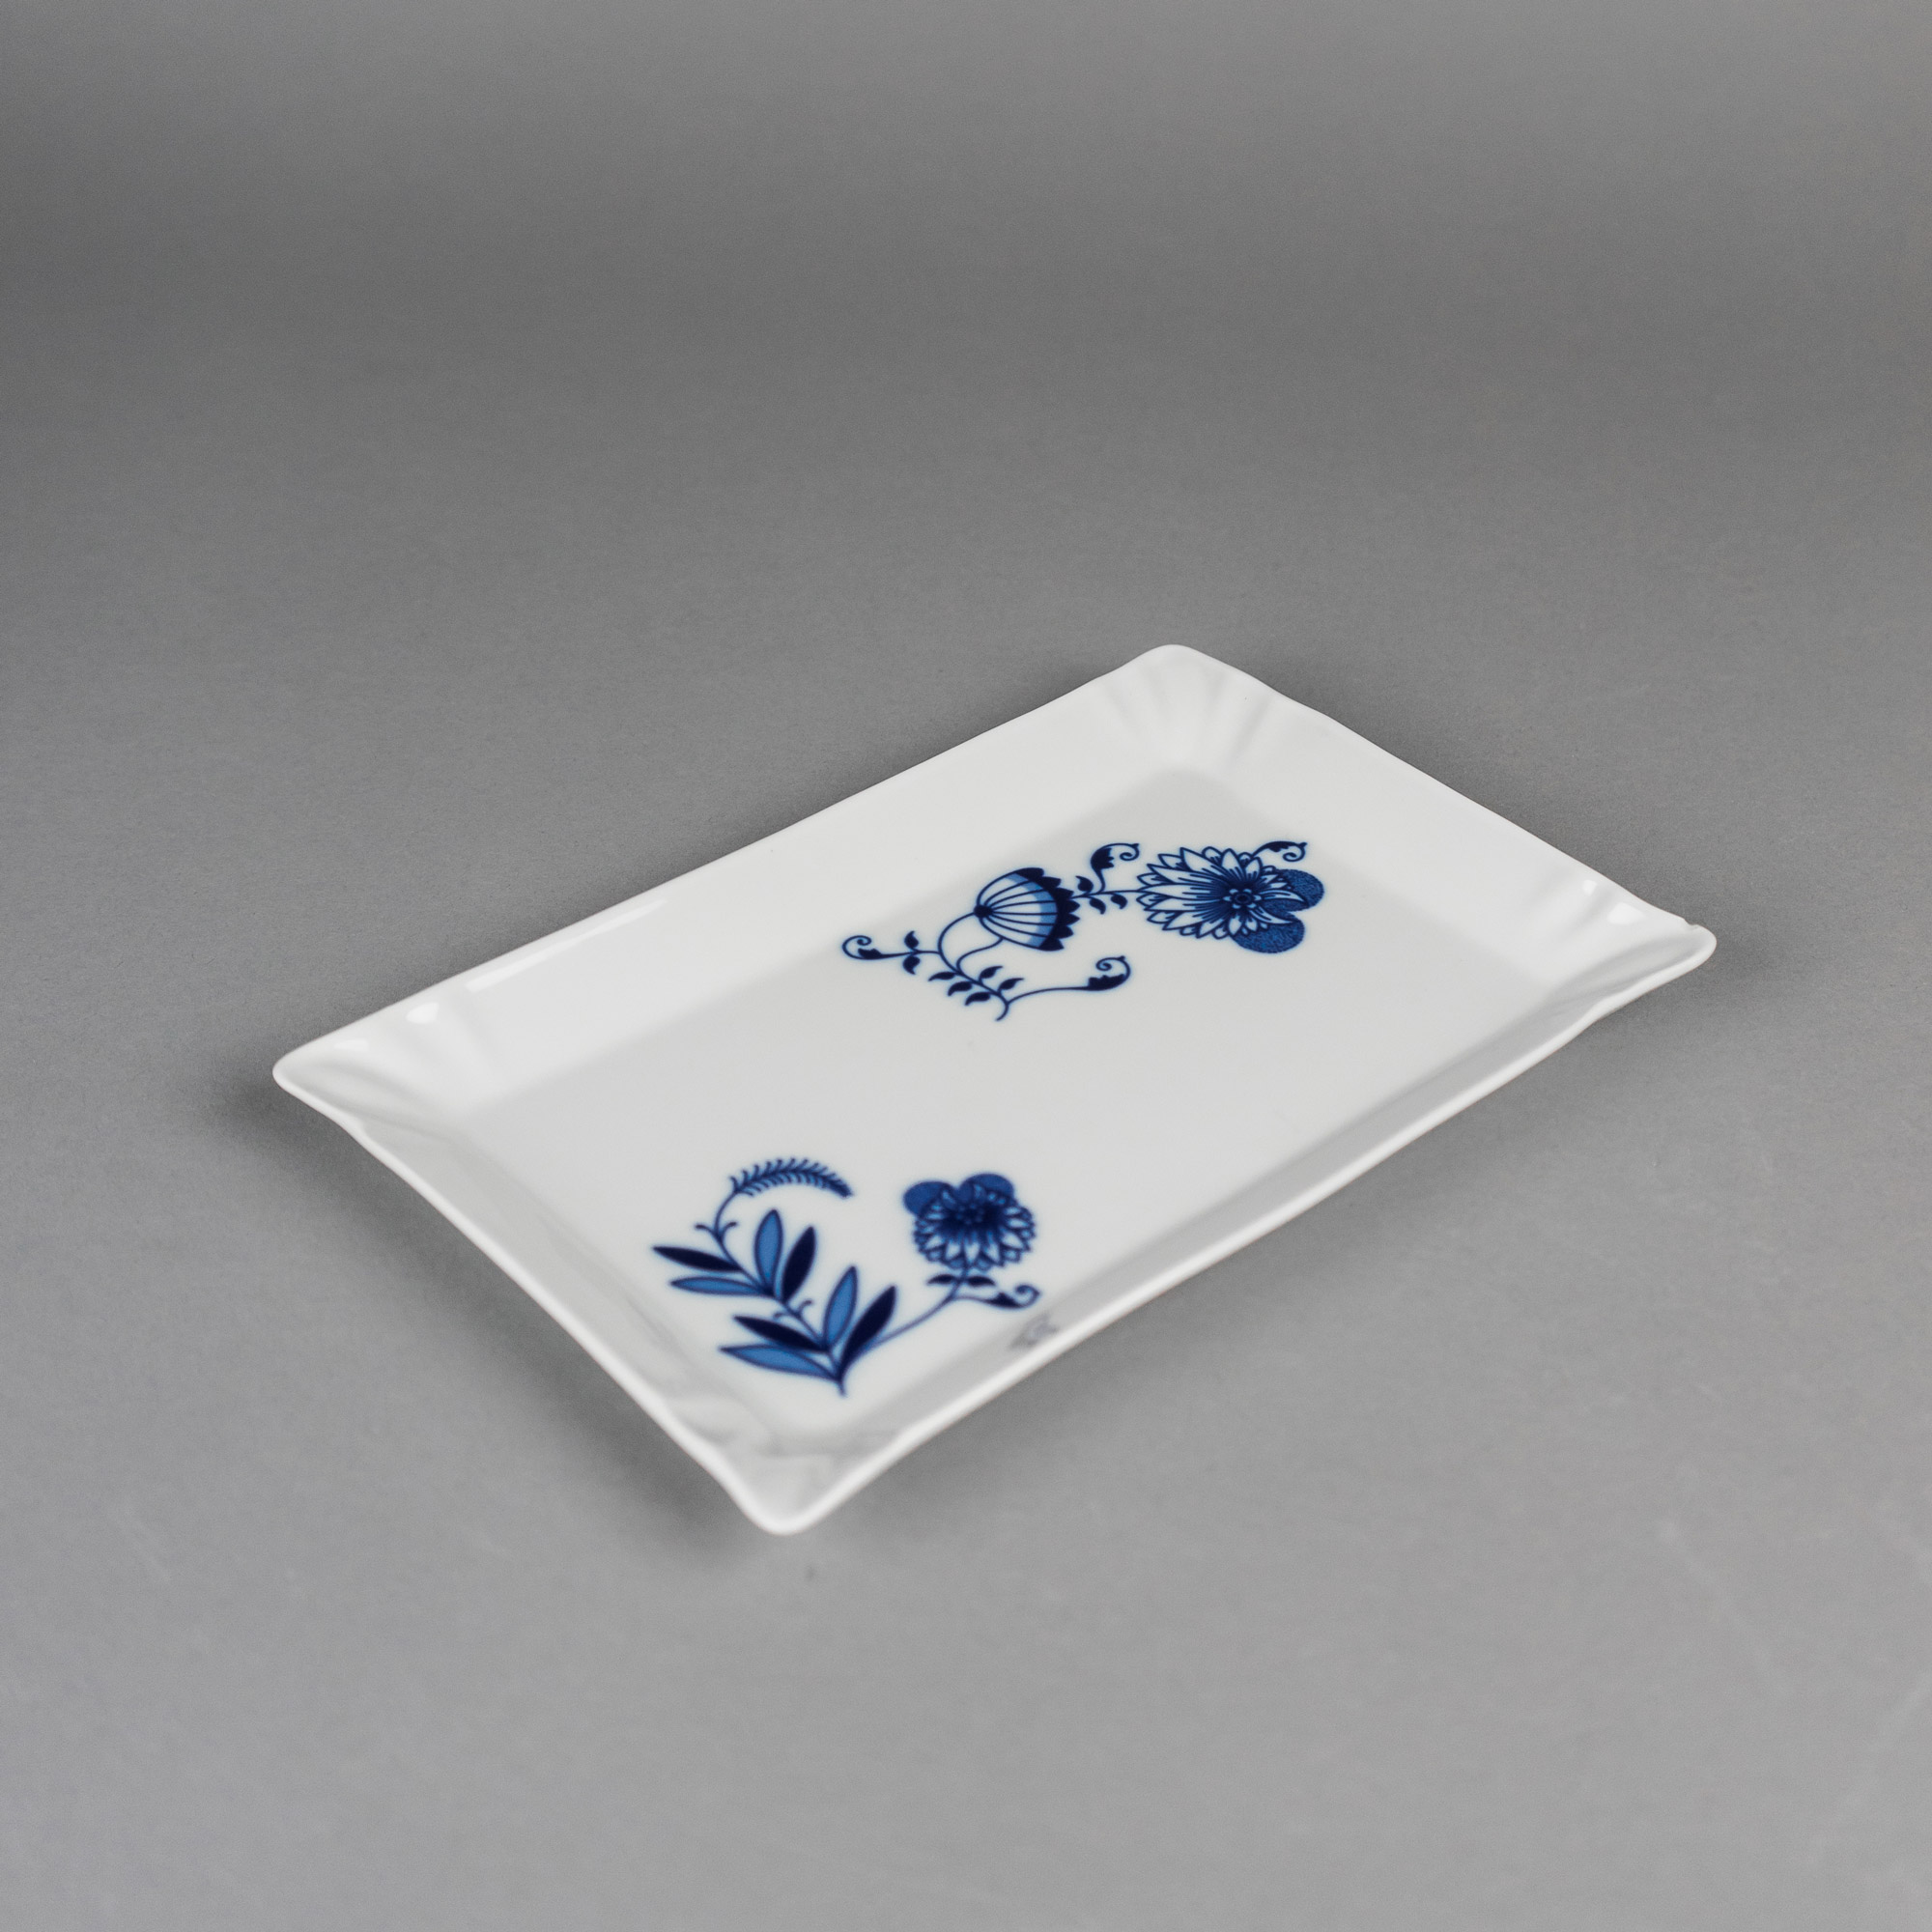 Onion tray by Qubus